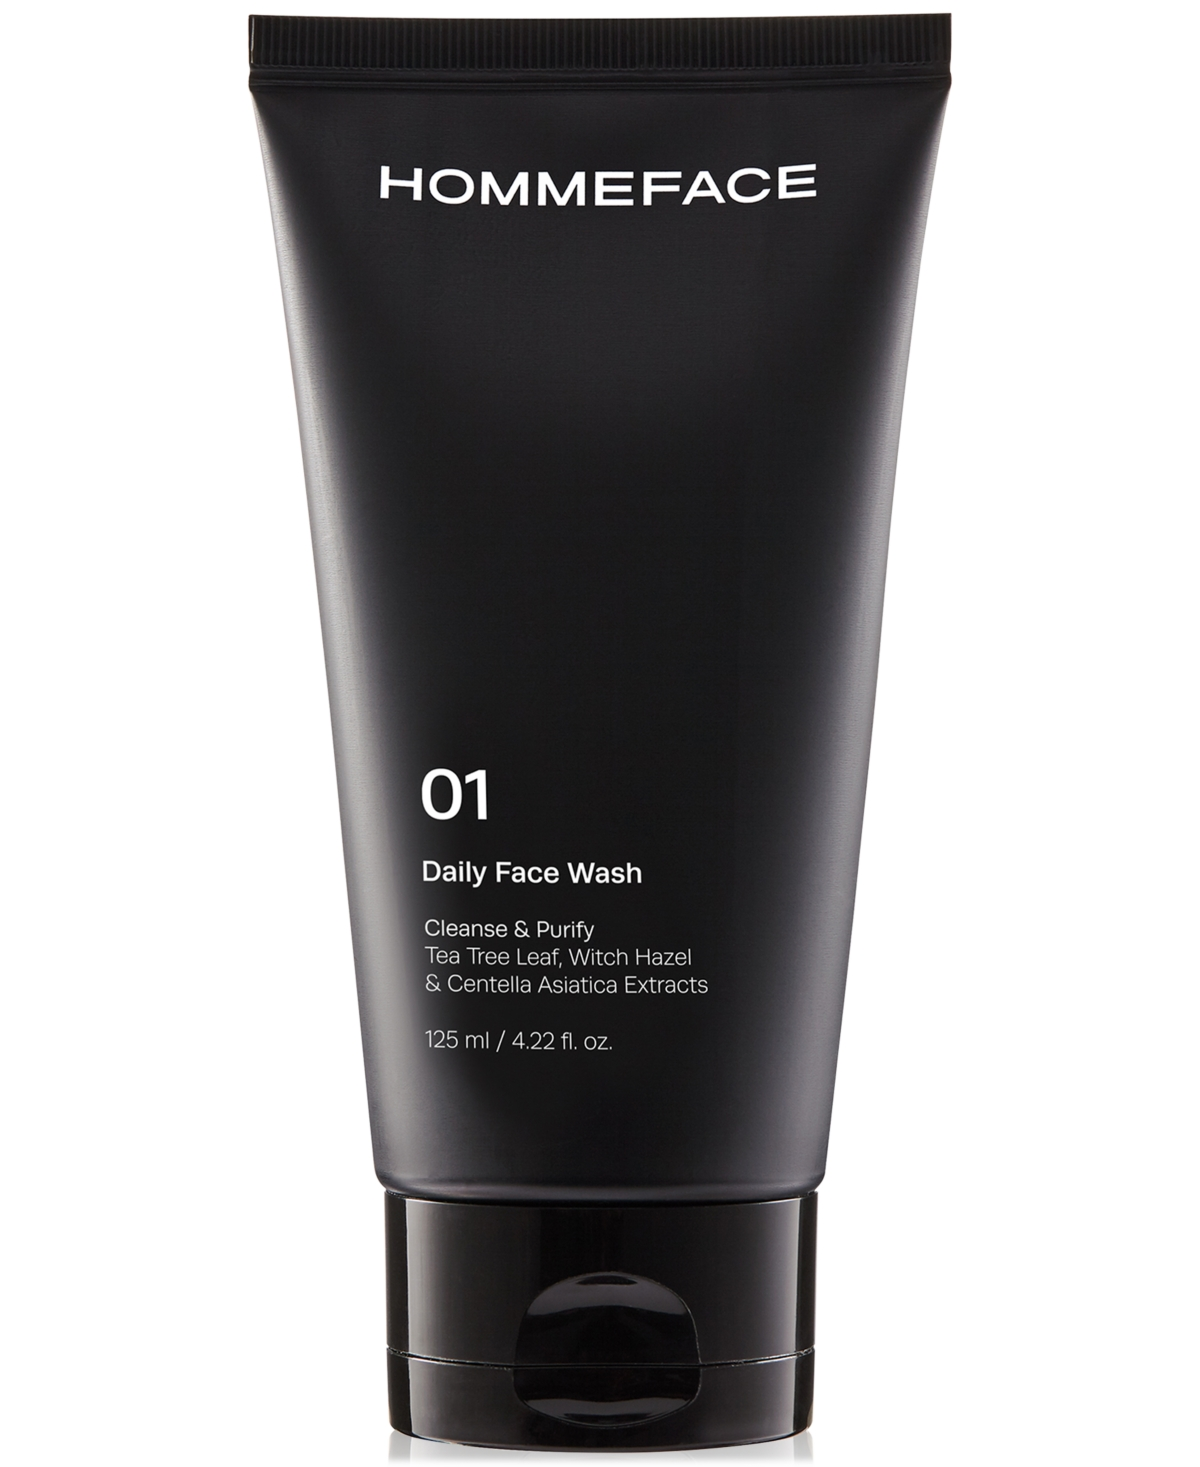 Daily Face Wash for Men